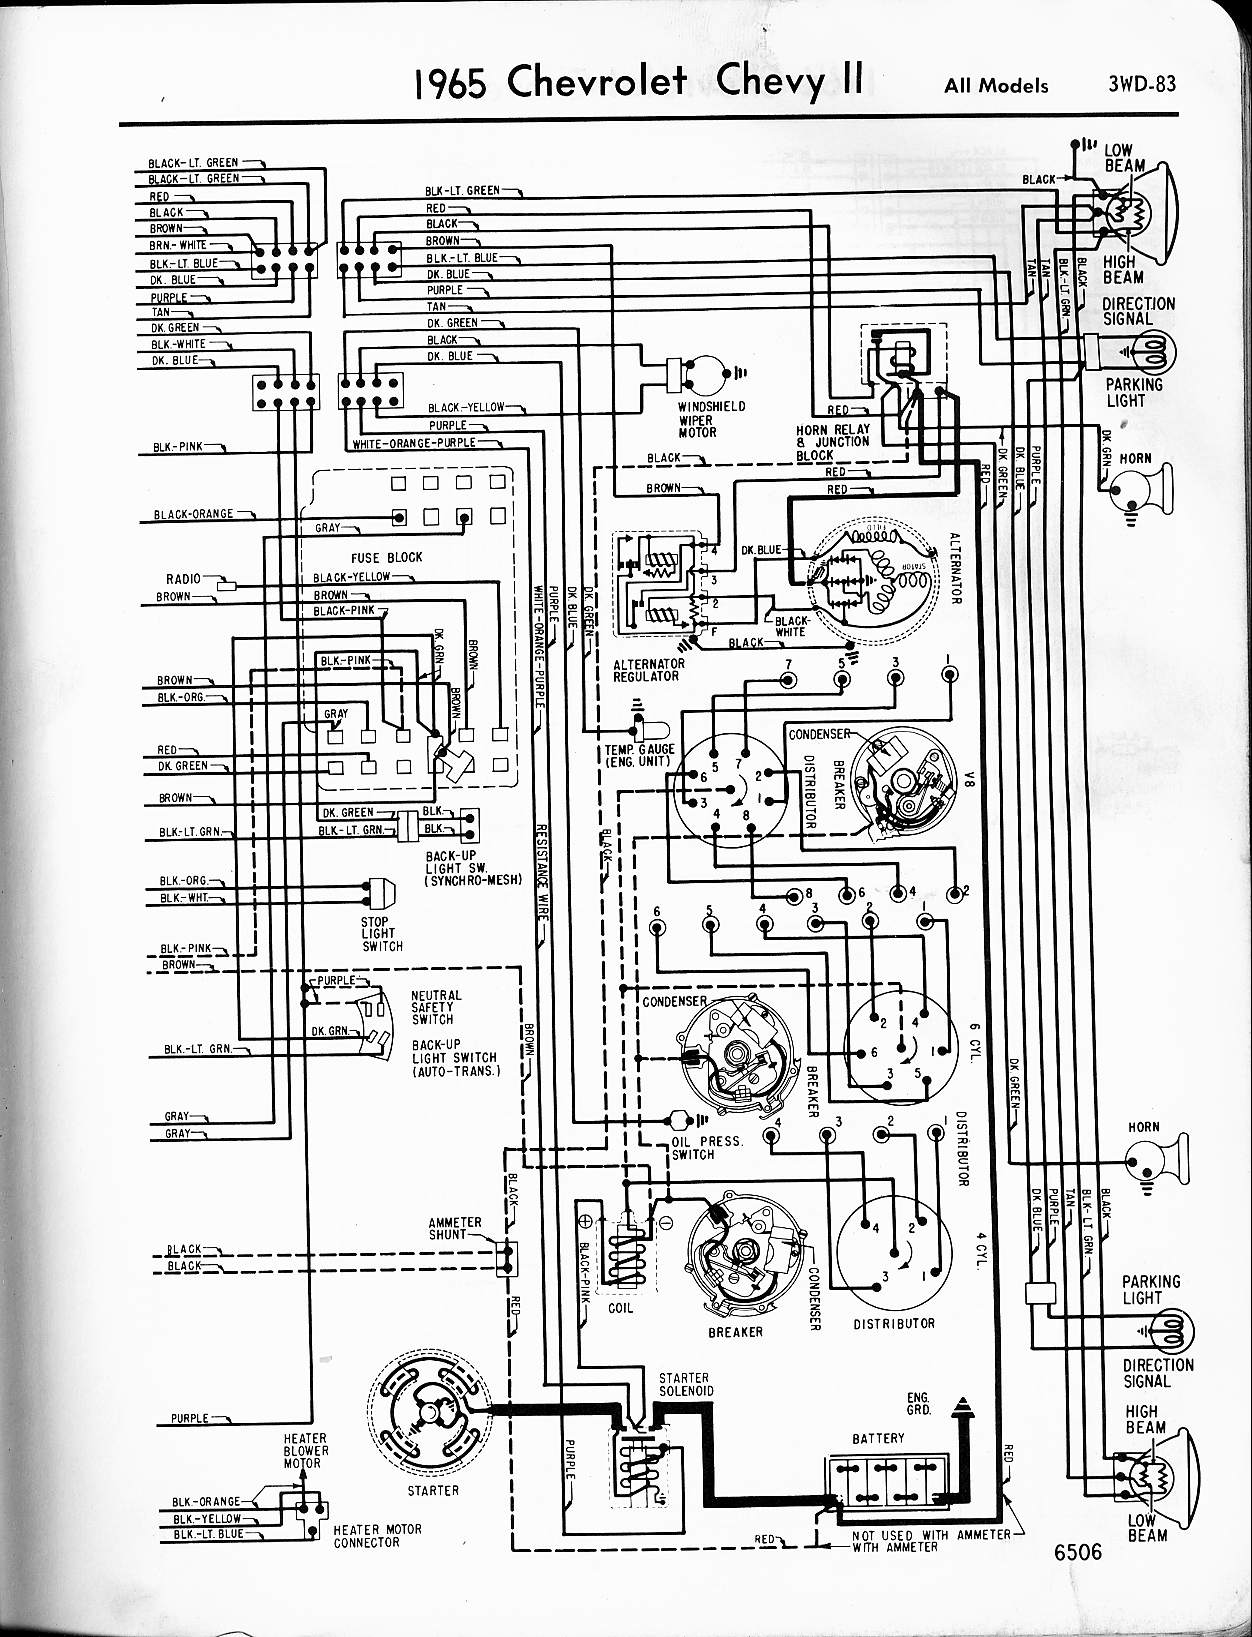 1968 Cadillac Wiring Schematics Electrical Diagram Diagrams Turn Signal Diy Enthusiasts 1965 Directional Switch